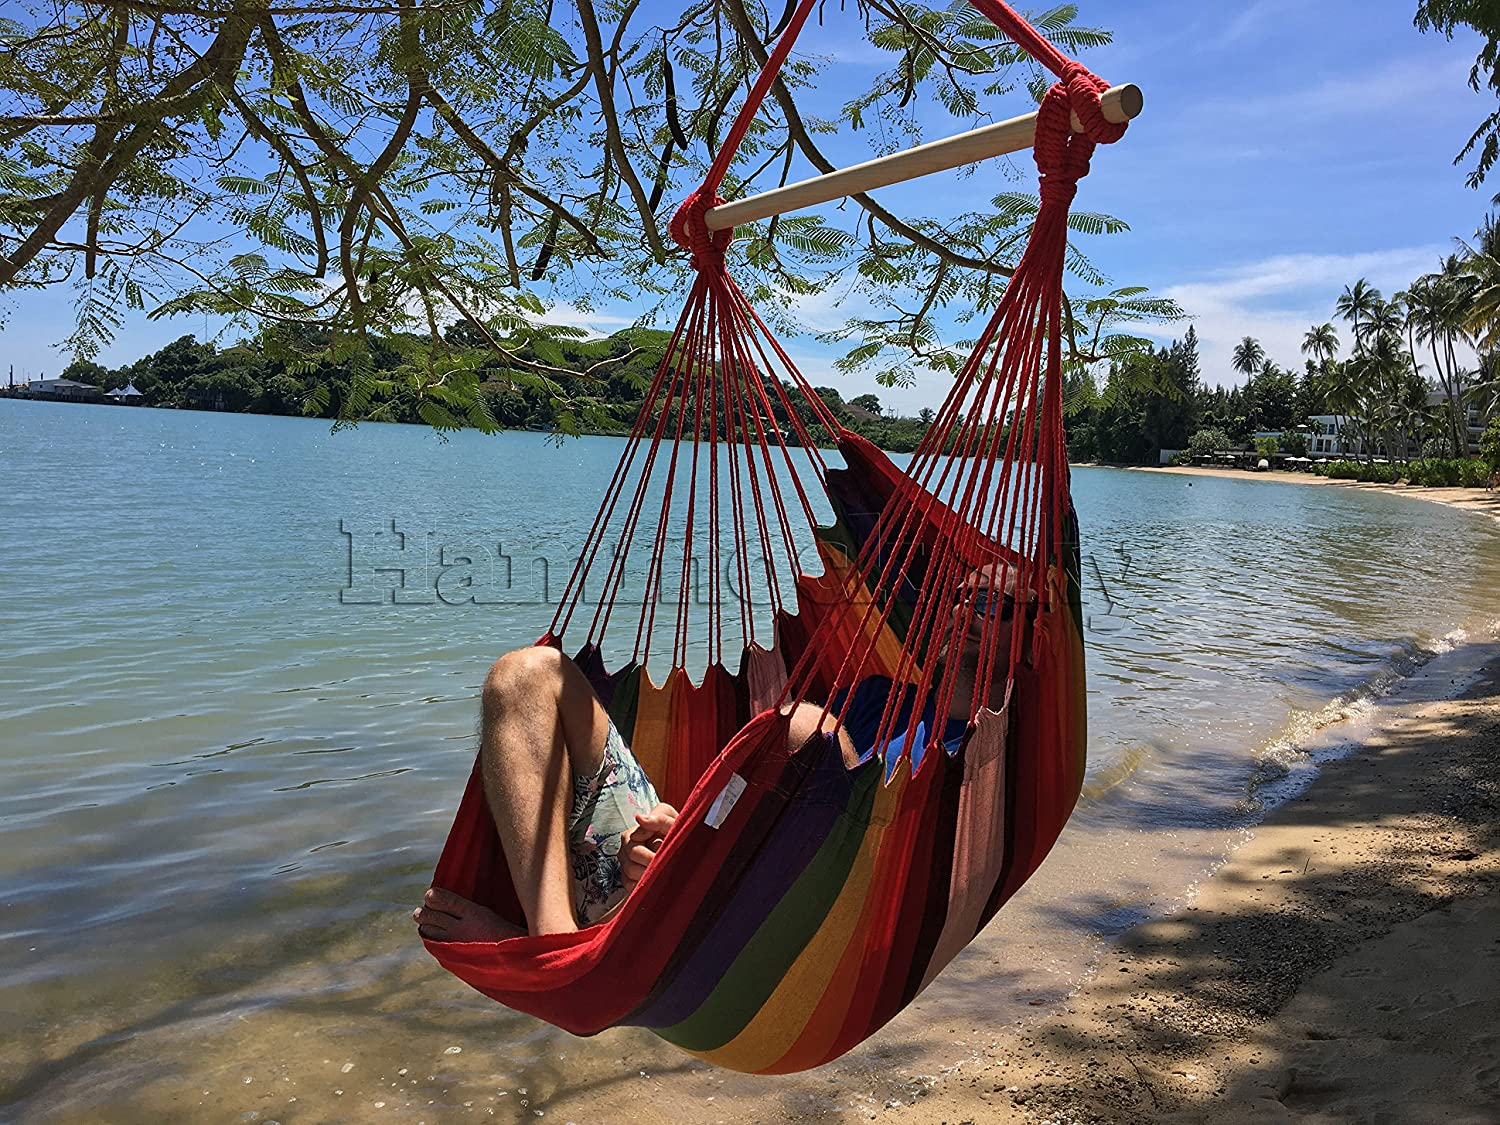 amazon    large brazilian hammock chair by hammock sky   quality cotton weave for superior  fort  u0026 durability   extra long bed   hanging chair for yard     amazon    large brazilian hammock chair by hammock sky   quality      rh   amazon